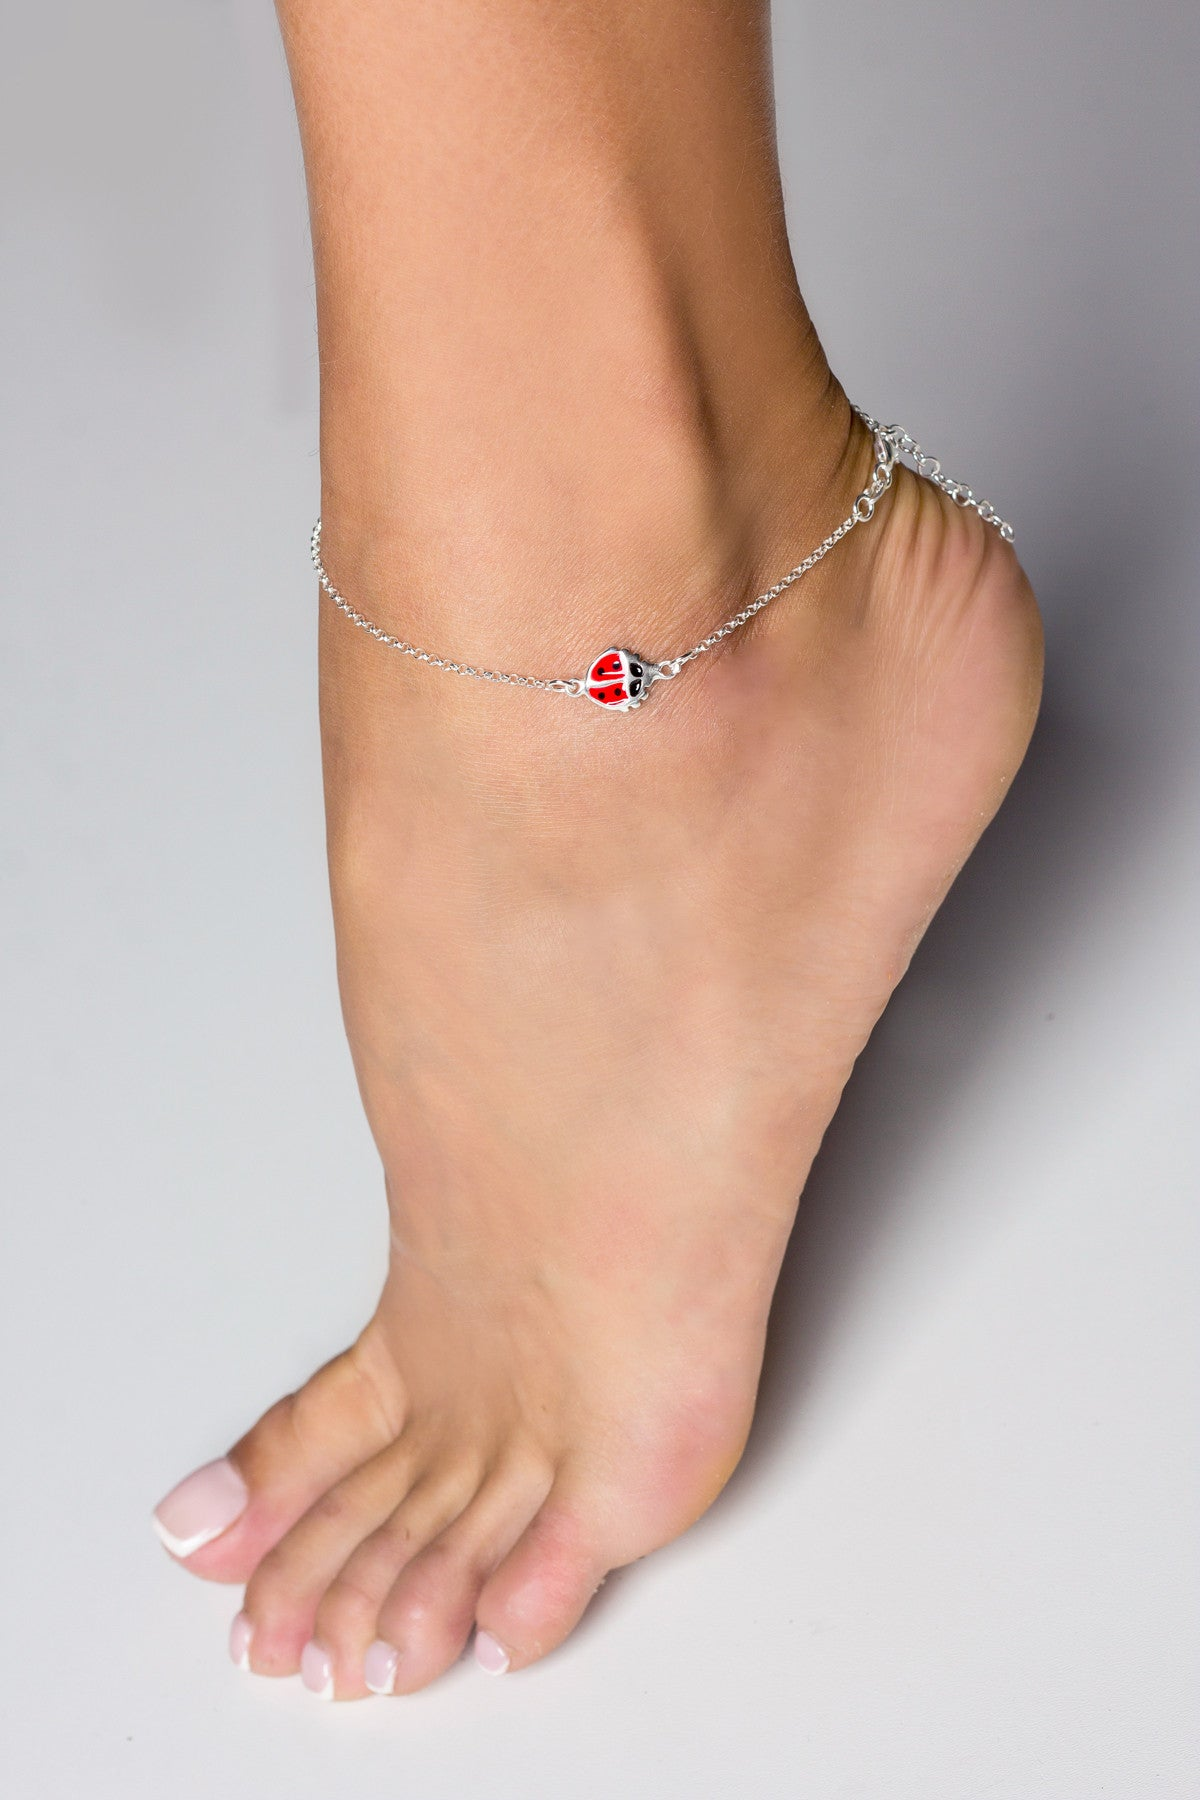 side pin image check visiting anklet by inch bracelet heart link friendship mirror and the gold chain bracelets yellow with double out relationship charms ankle